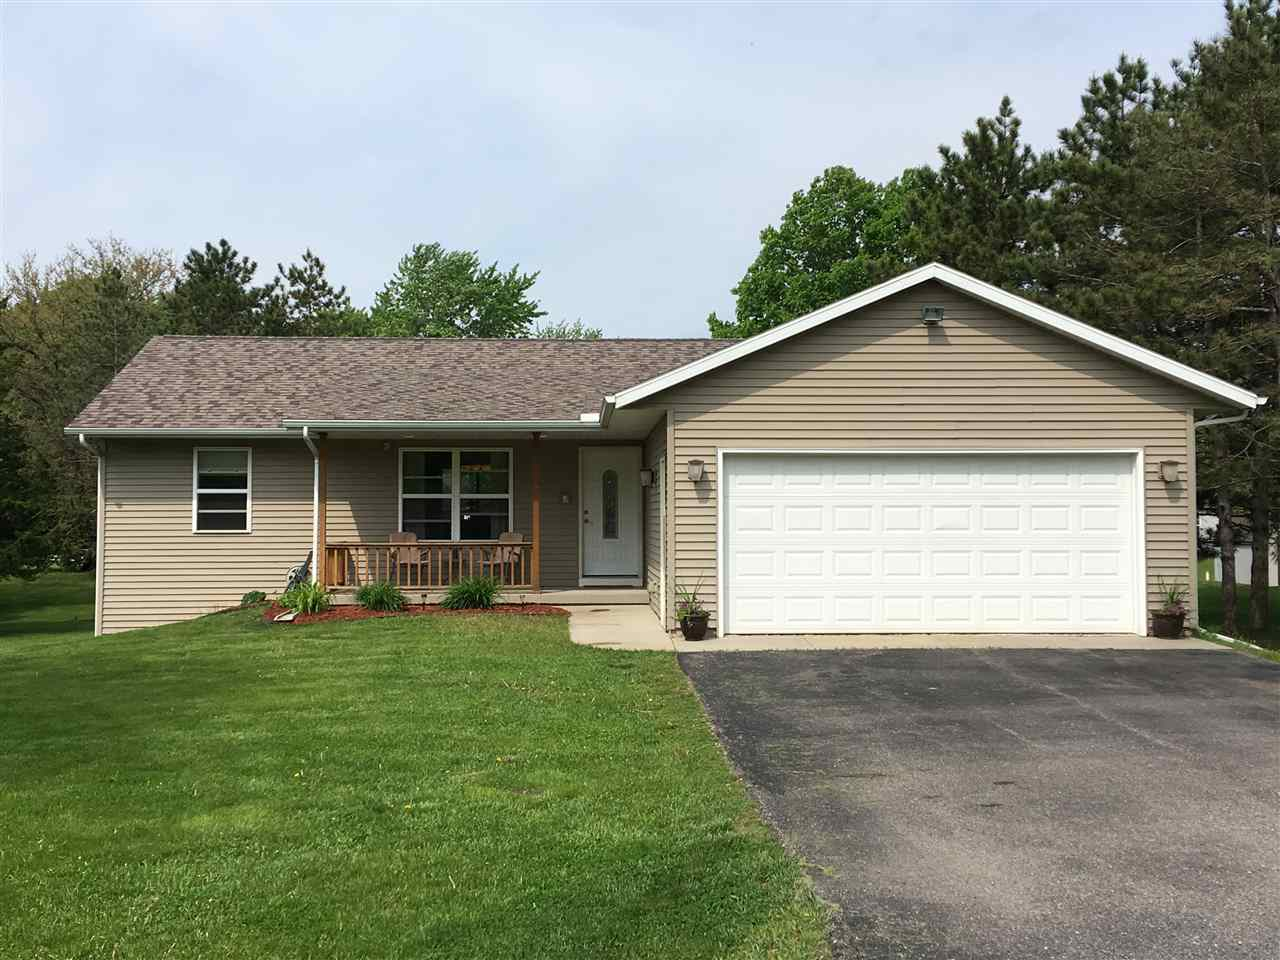 N6251 HILLCREST RD, Pacific, WI 53954